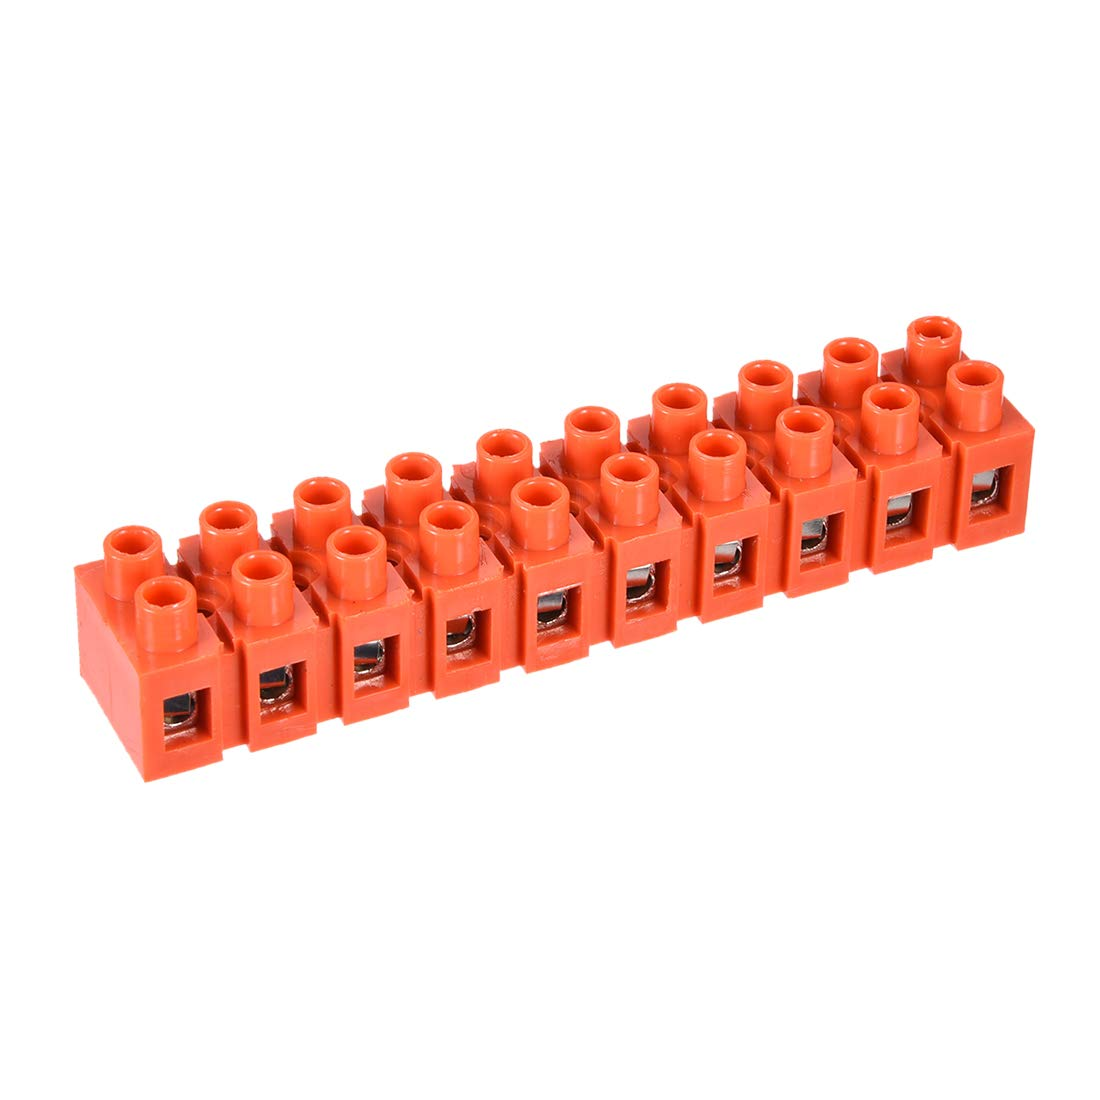 Uxcell a15102300ux0661 7 Piece 10A Dual Rows 12 Position Terminal Block Barrier Strip Cable Connector